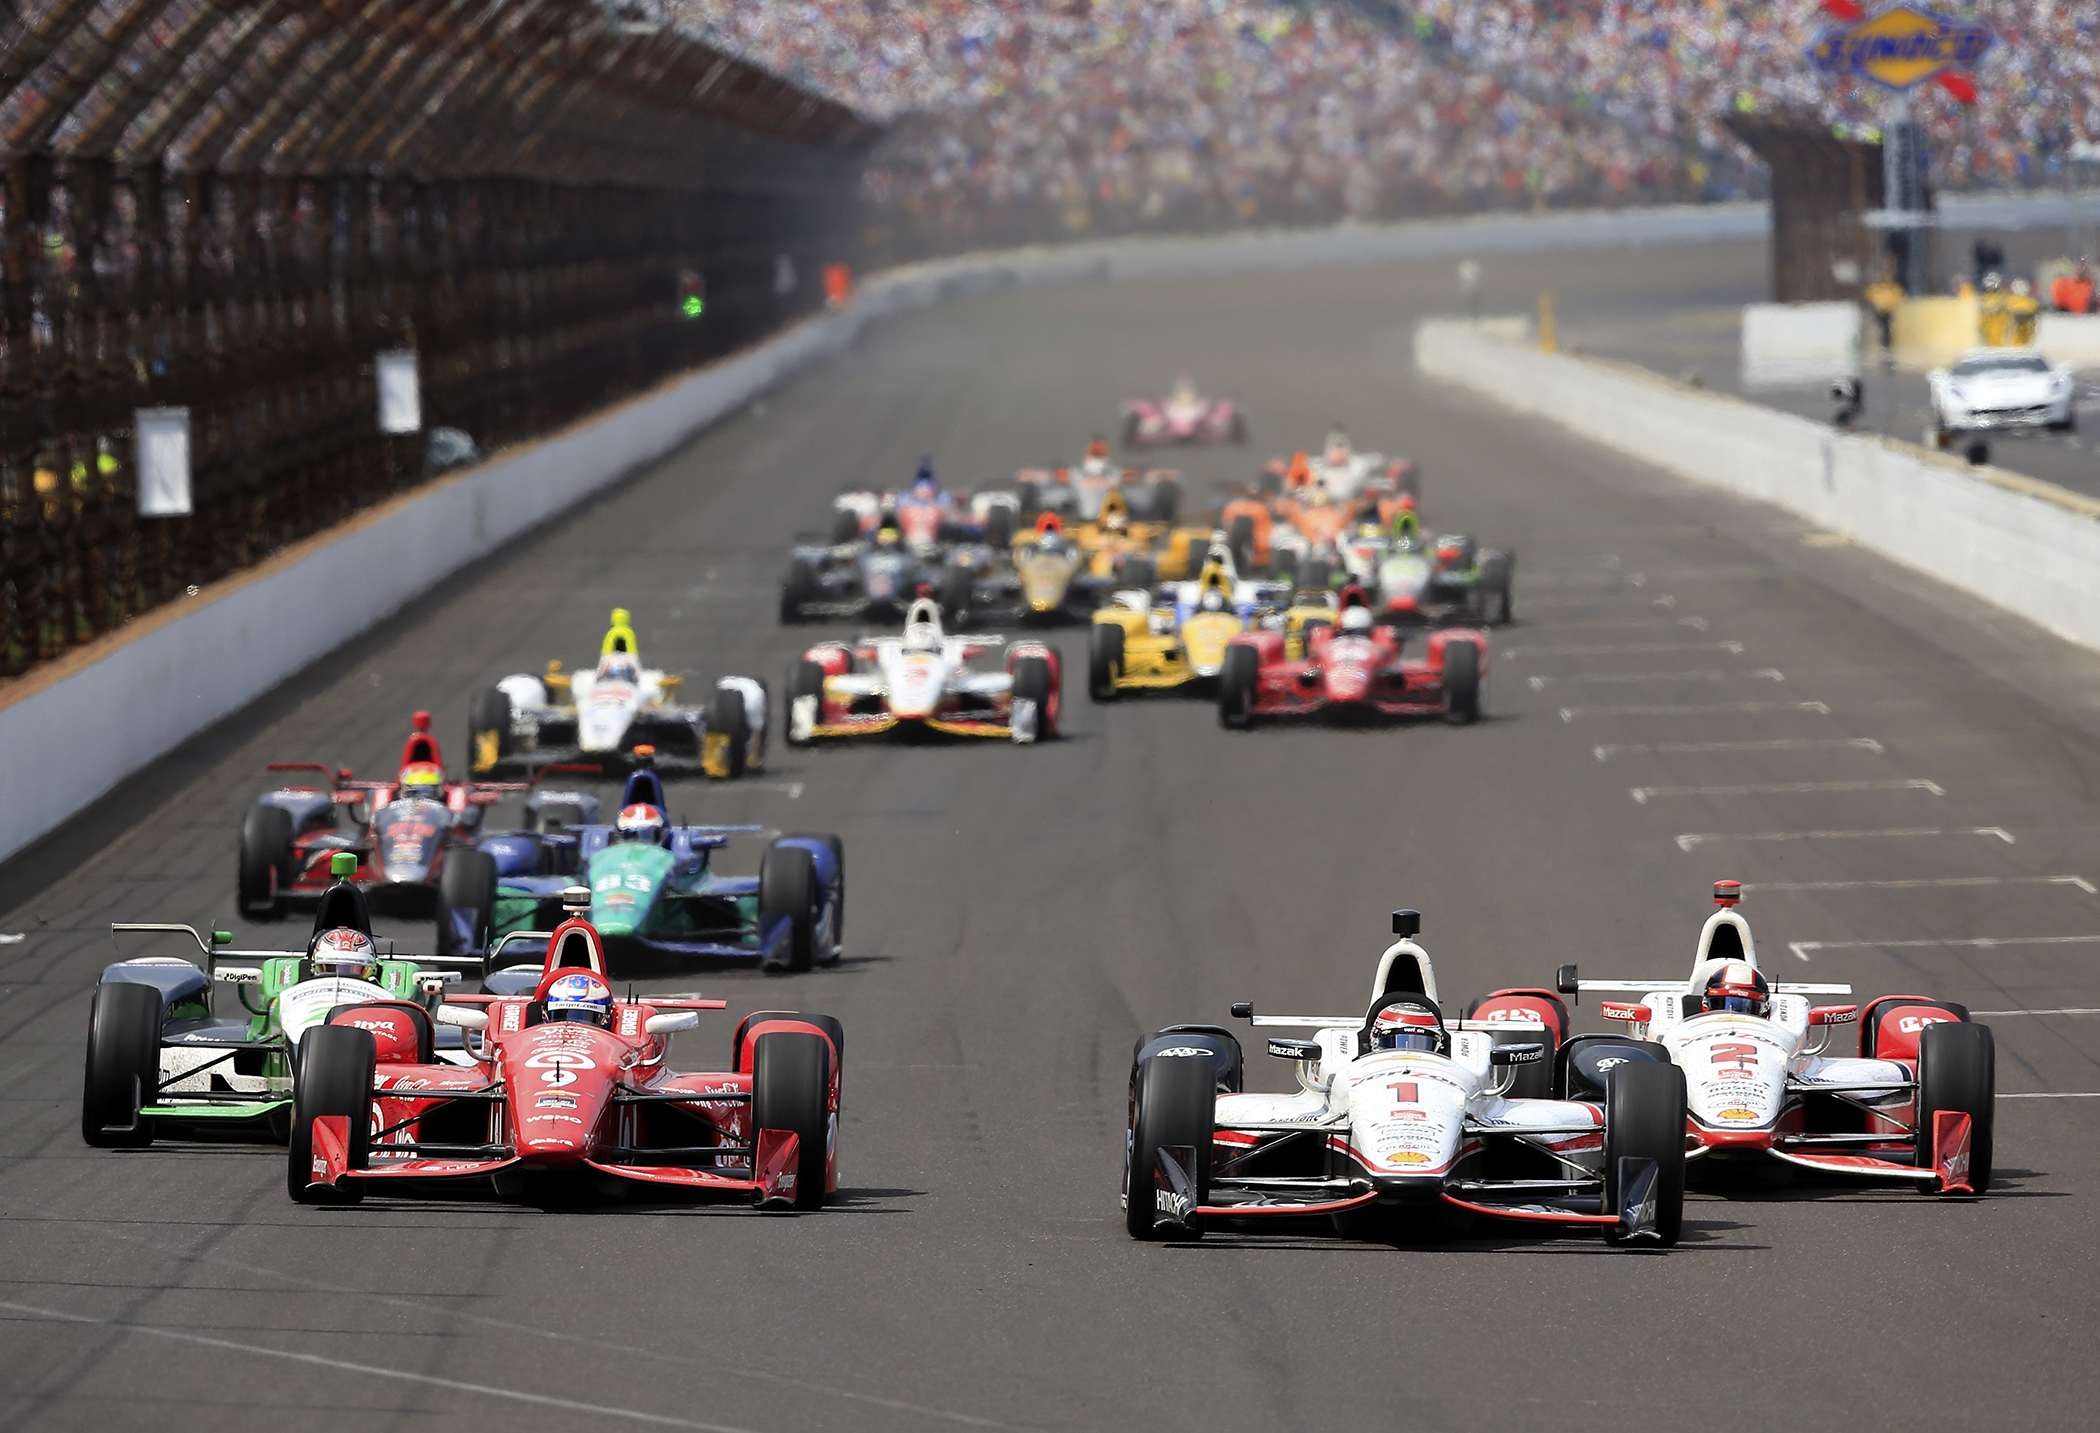 Scott Dixon of Australia, driver of the #9 Target Chip Ganassi Racing Chevrolet Dallara, races alongside Juan Pablo Montoya of Columbia, driver of the #2 Team Penske Chevrolet Dallara, and Will Power of Australia, driver of the #1  Verizon Team Penske Chevrolet Dallara, after a restart during the 99th running of the Indianapolis 500 at Indianapolis Motorspeedway on May 23, 2015 in Indianapolis, Indiana.